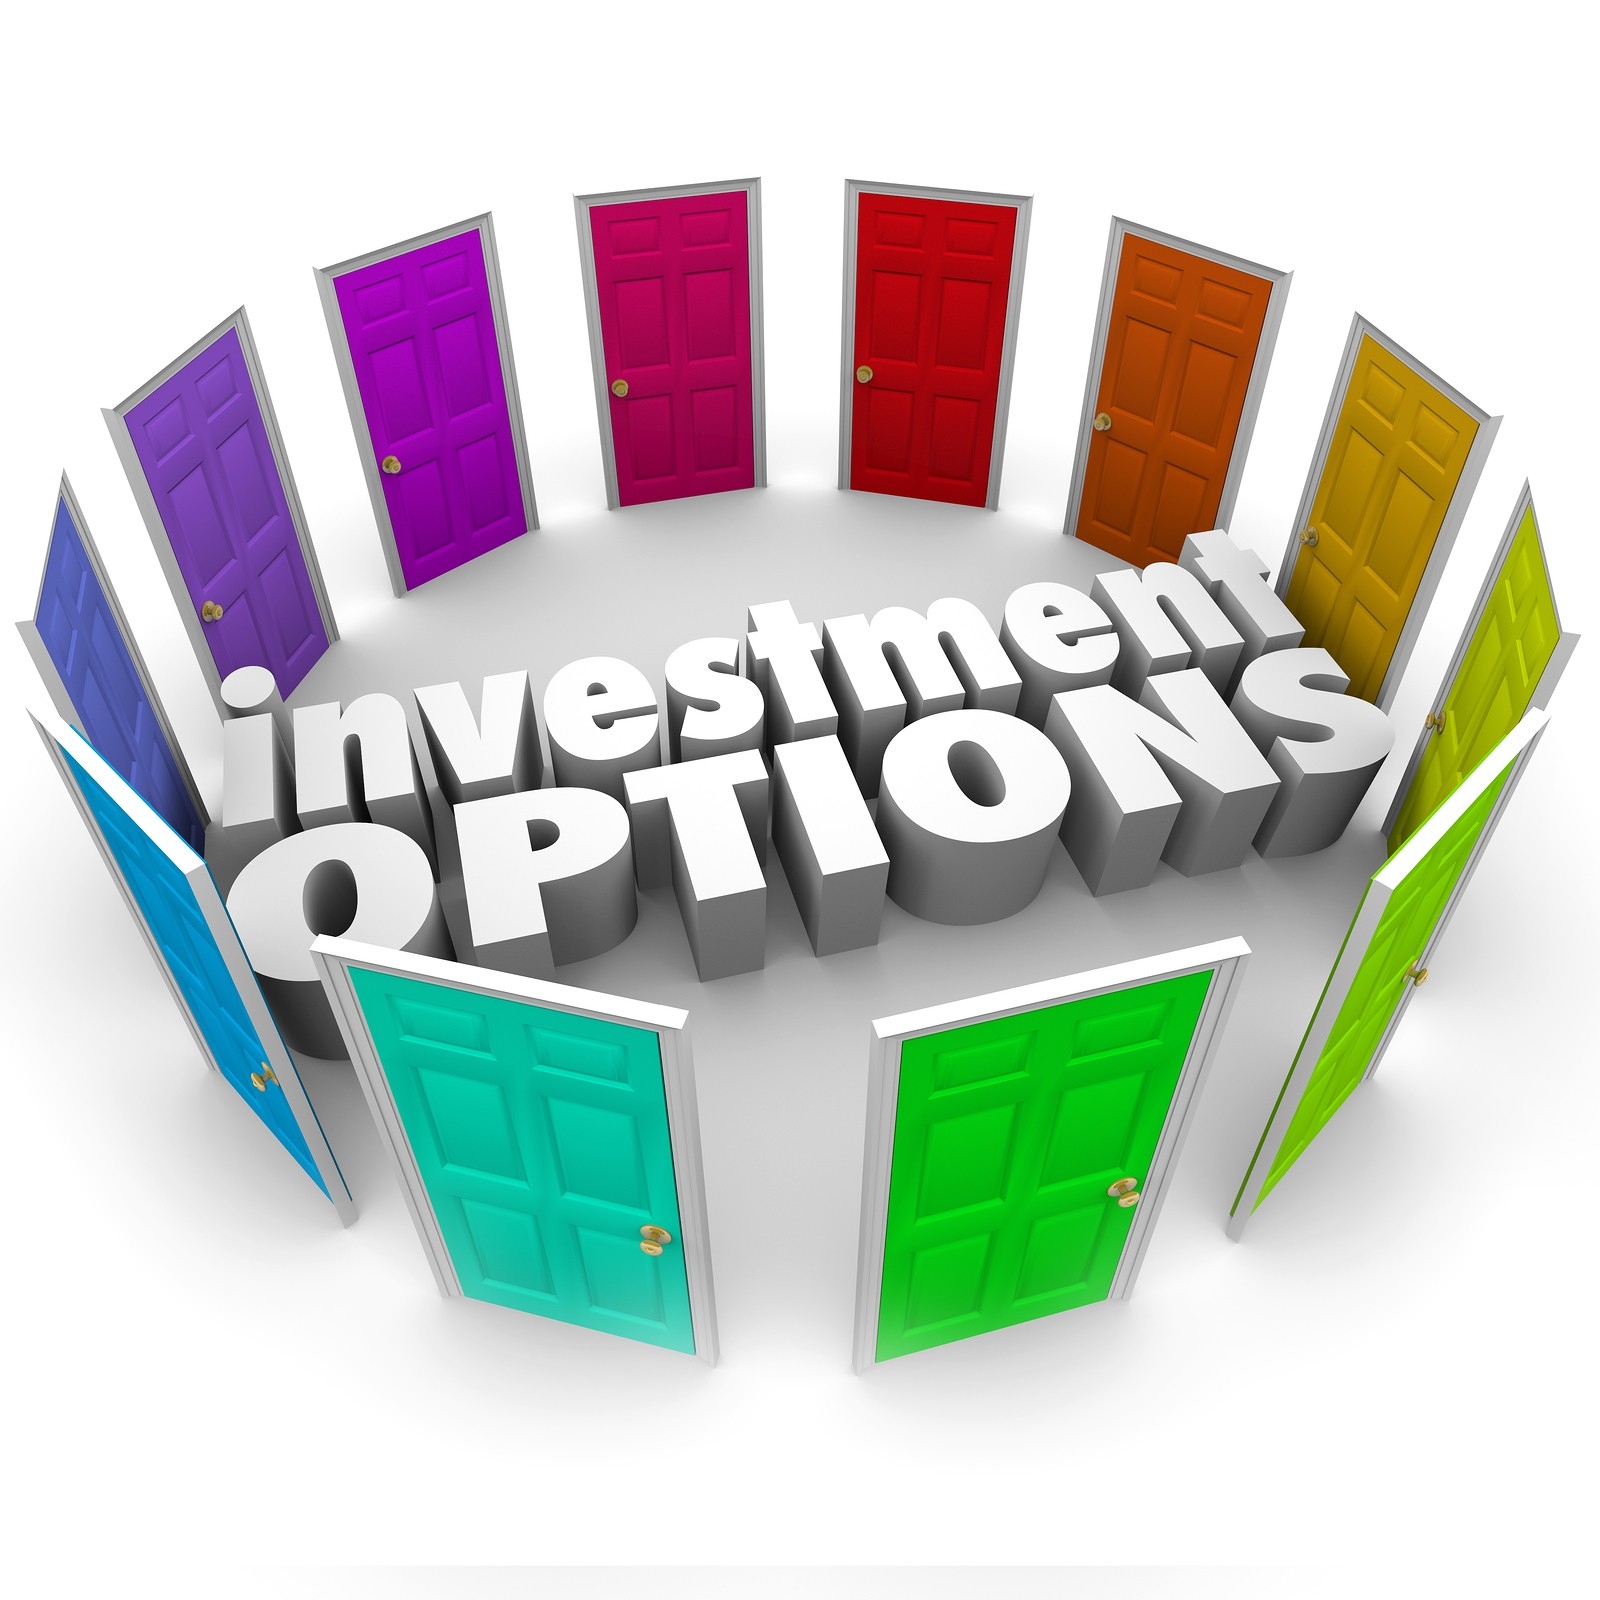 Top stock options for 2016